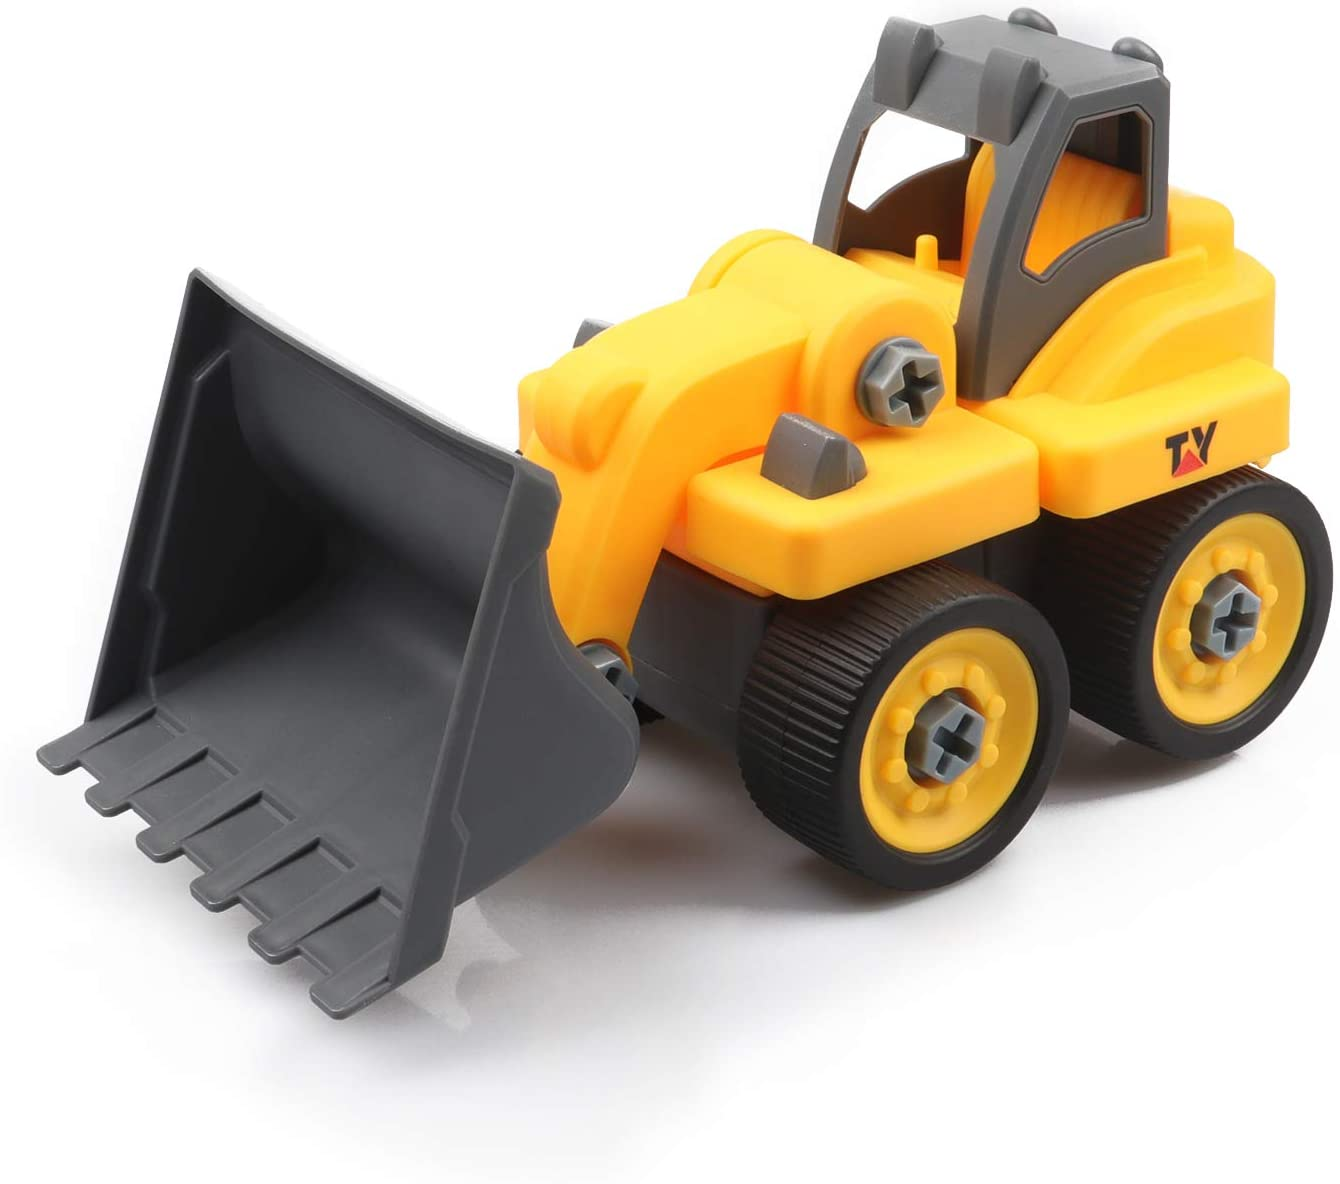 Building Toys for Kids Ages 4-8,Tipper Digger,Excavator Construction,Trucks